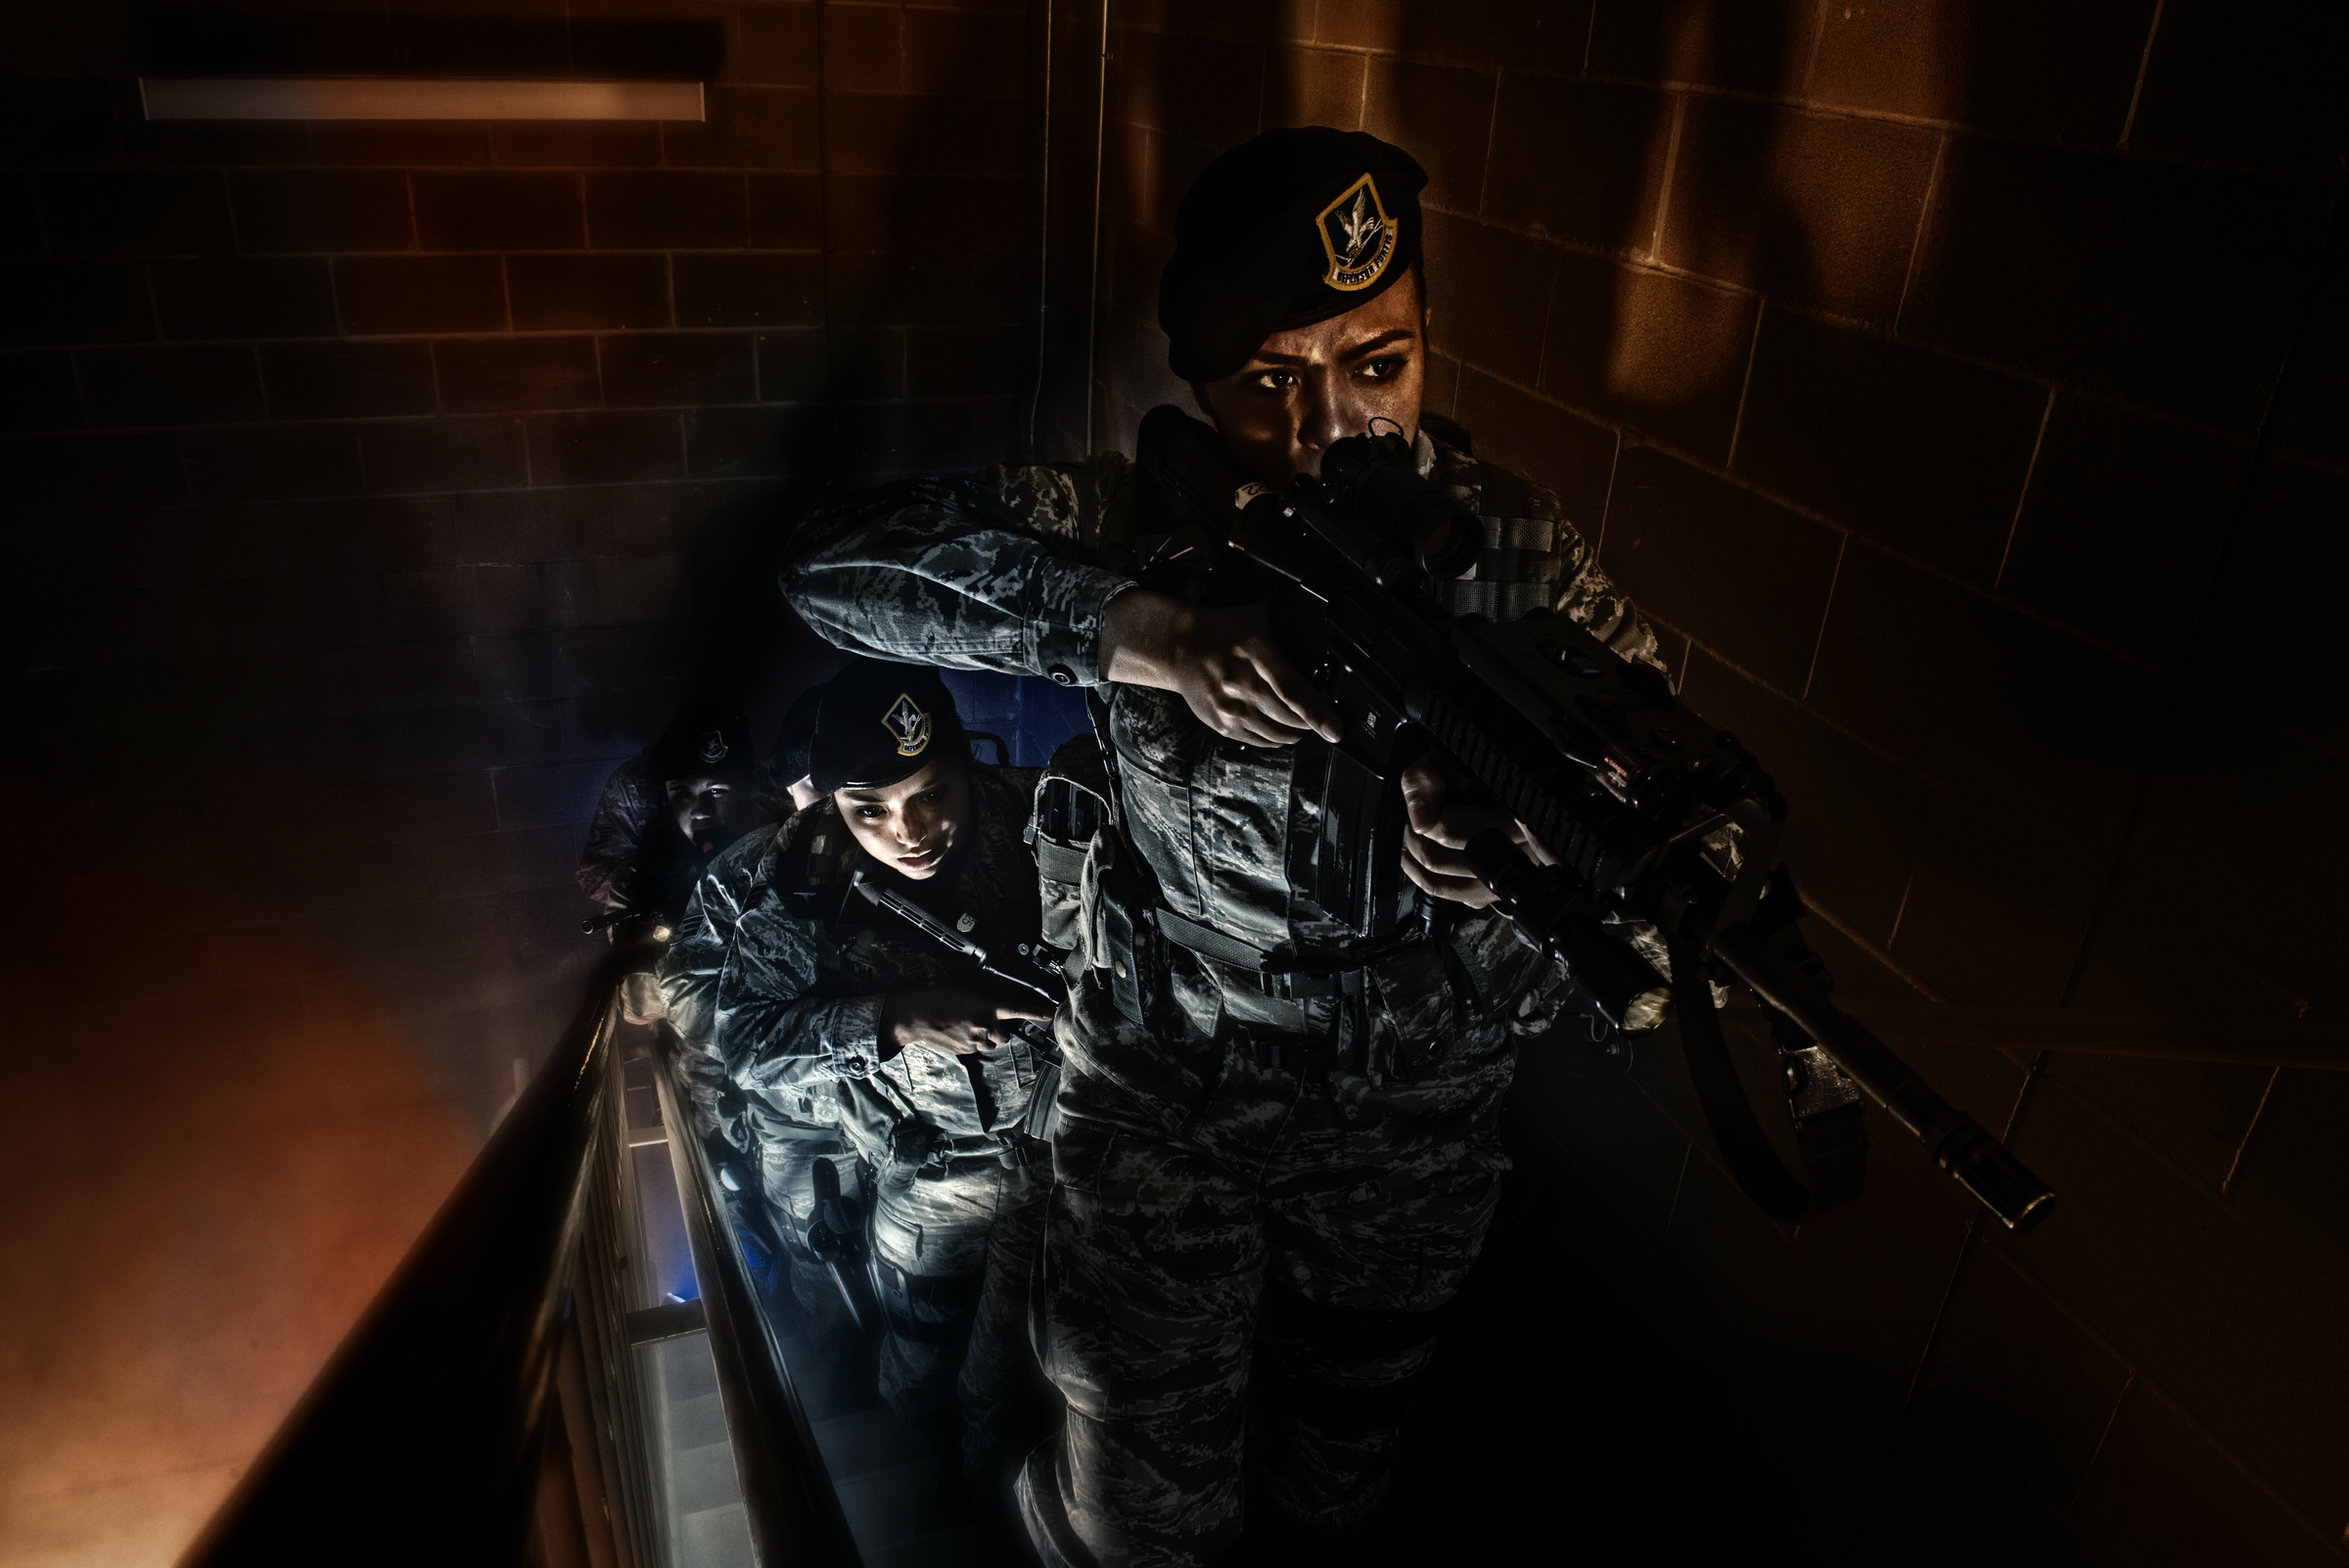 An Air Force Security Forces squad clear the stairwell of a training building during a simulated hostage situation in San Antonio, Texas. 2013 © Stacy L. Pearsall